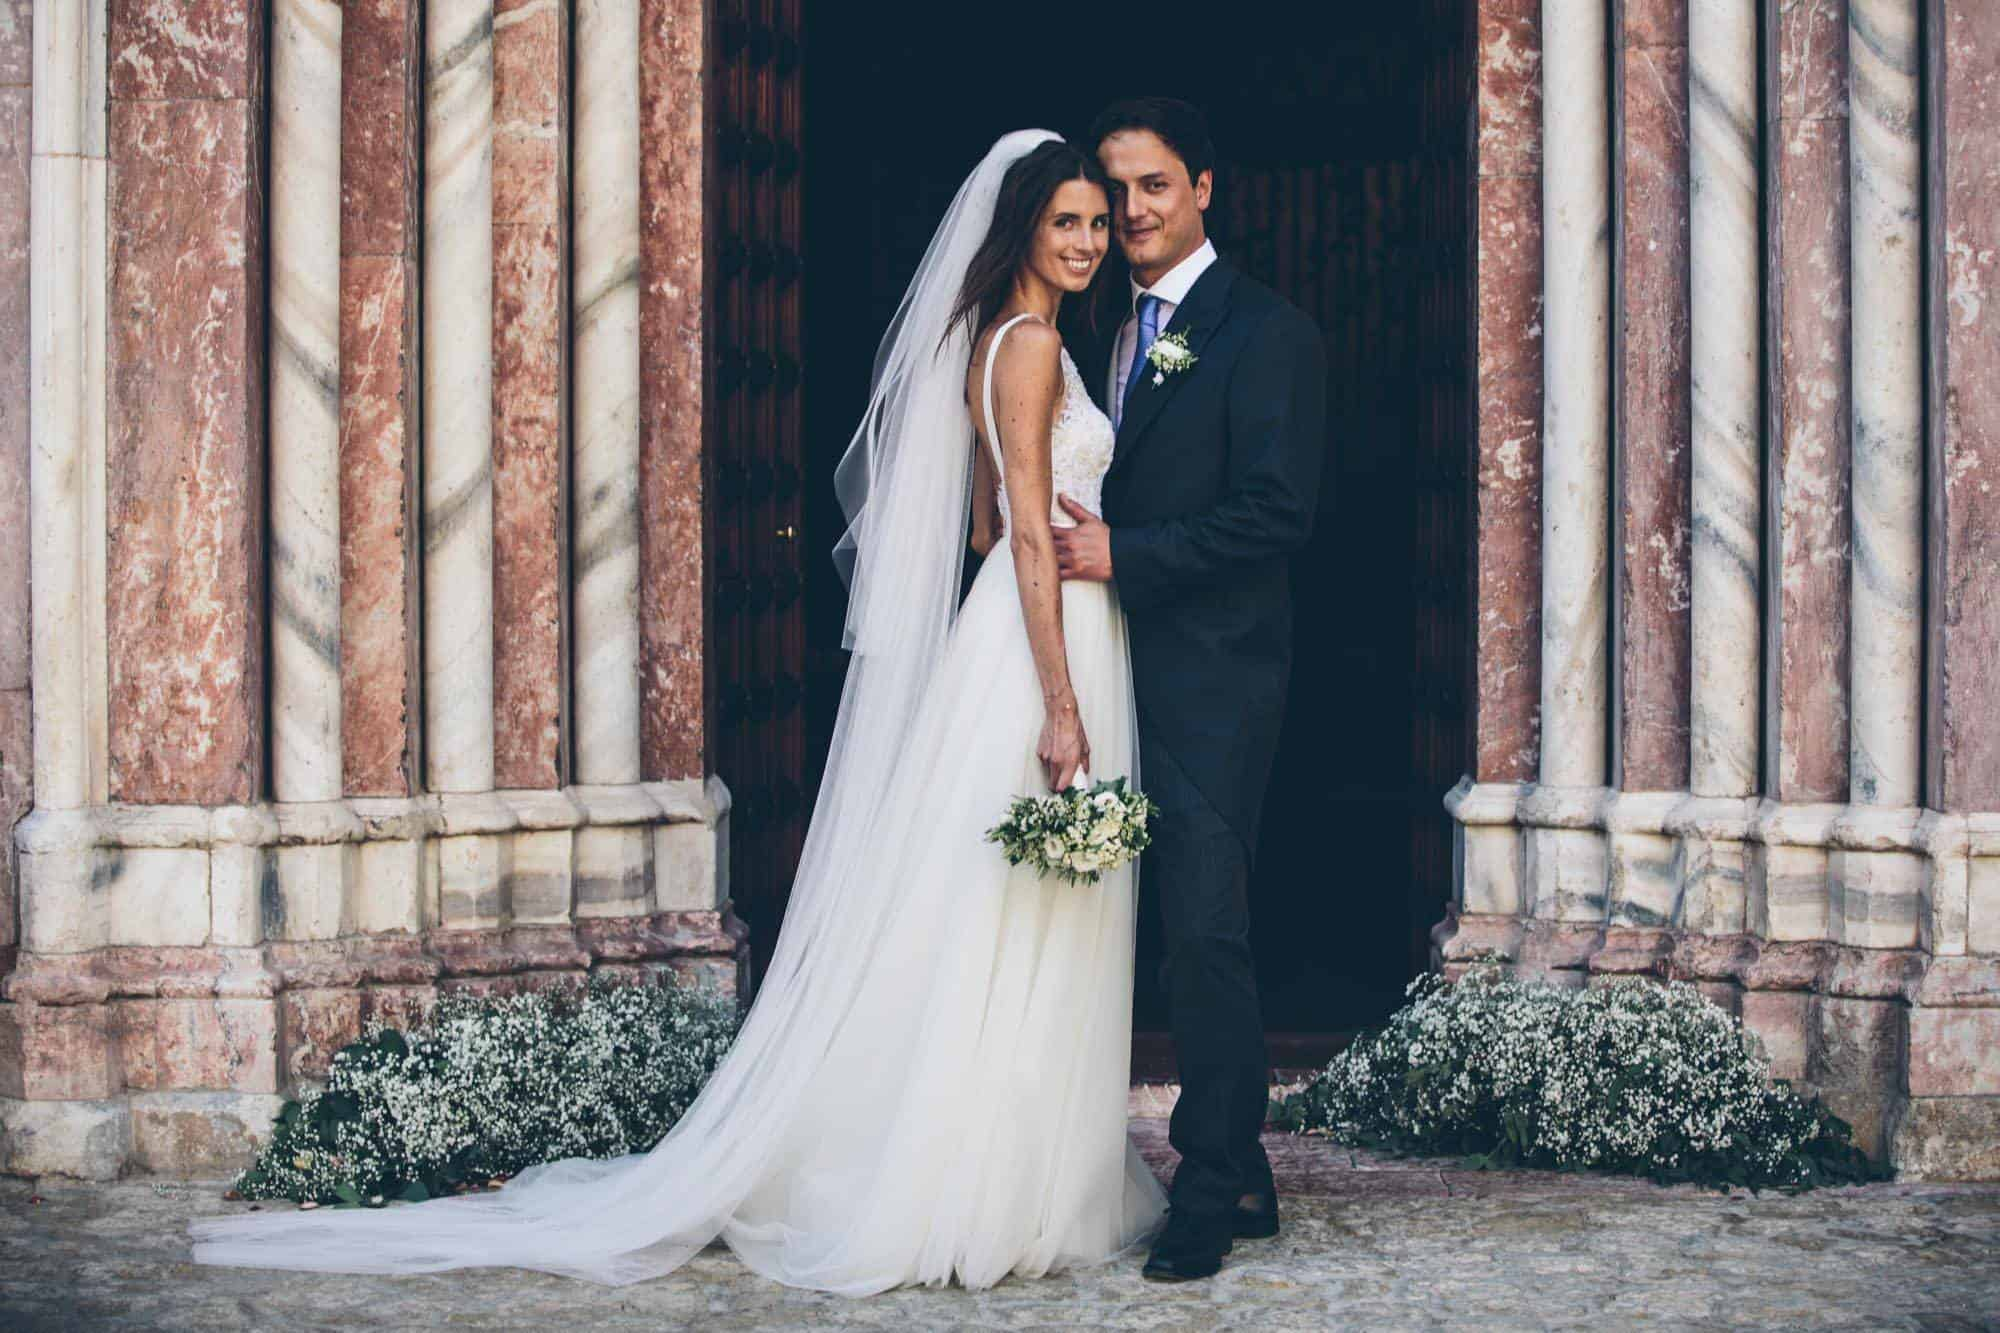 Married in Mallorca